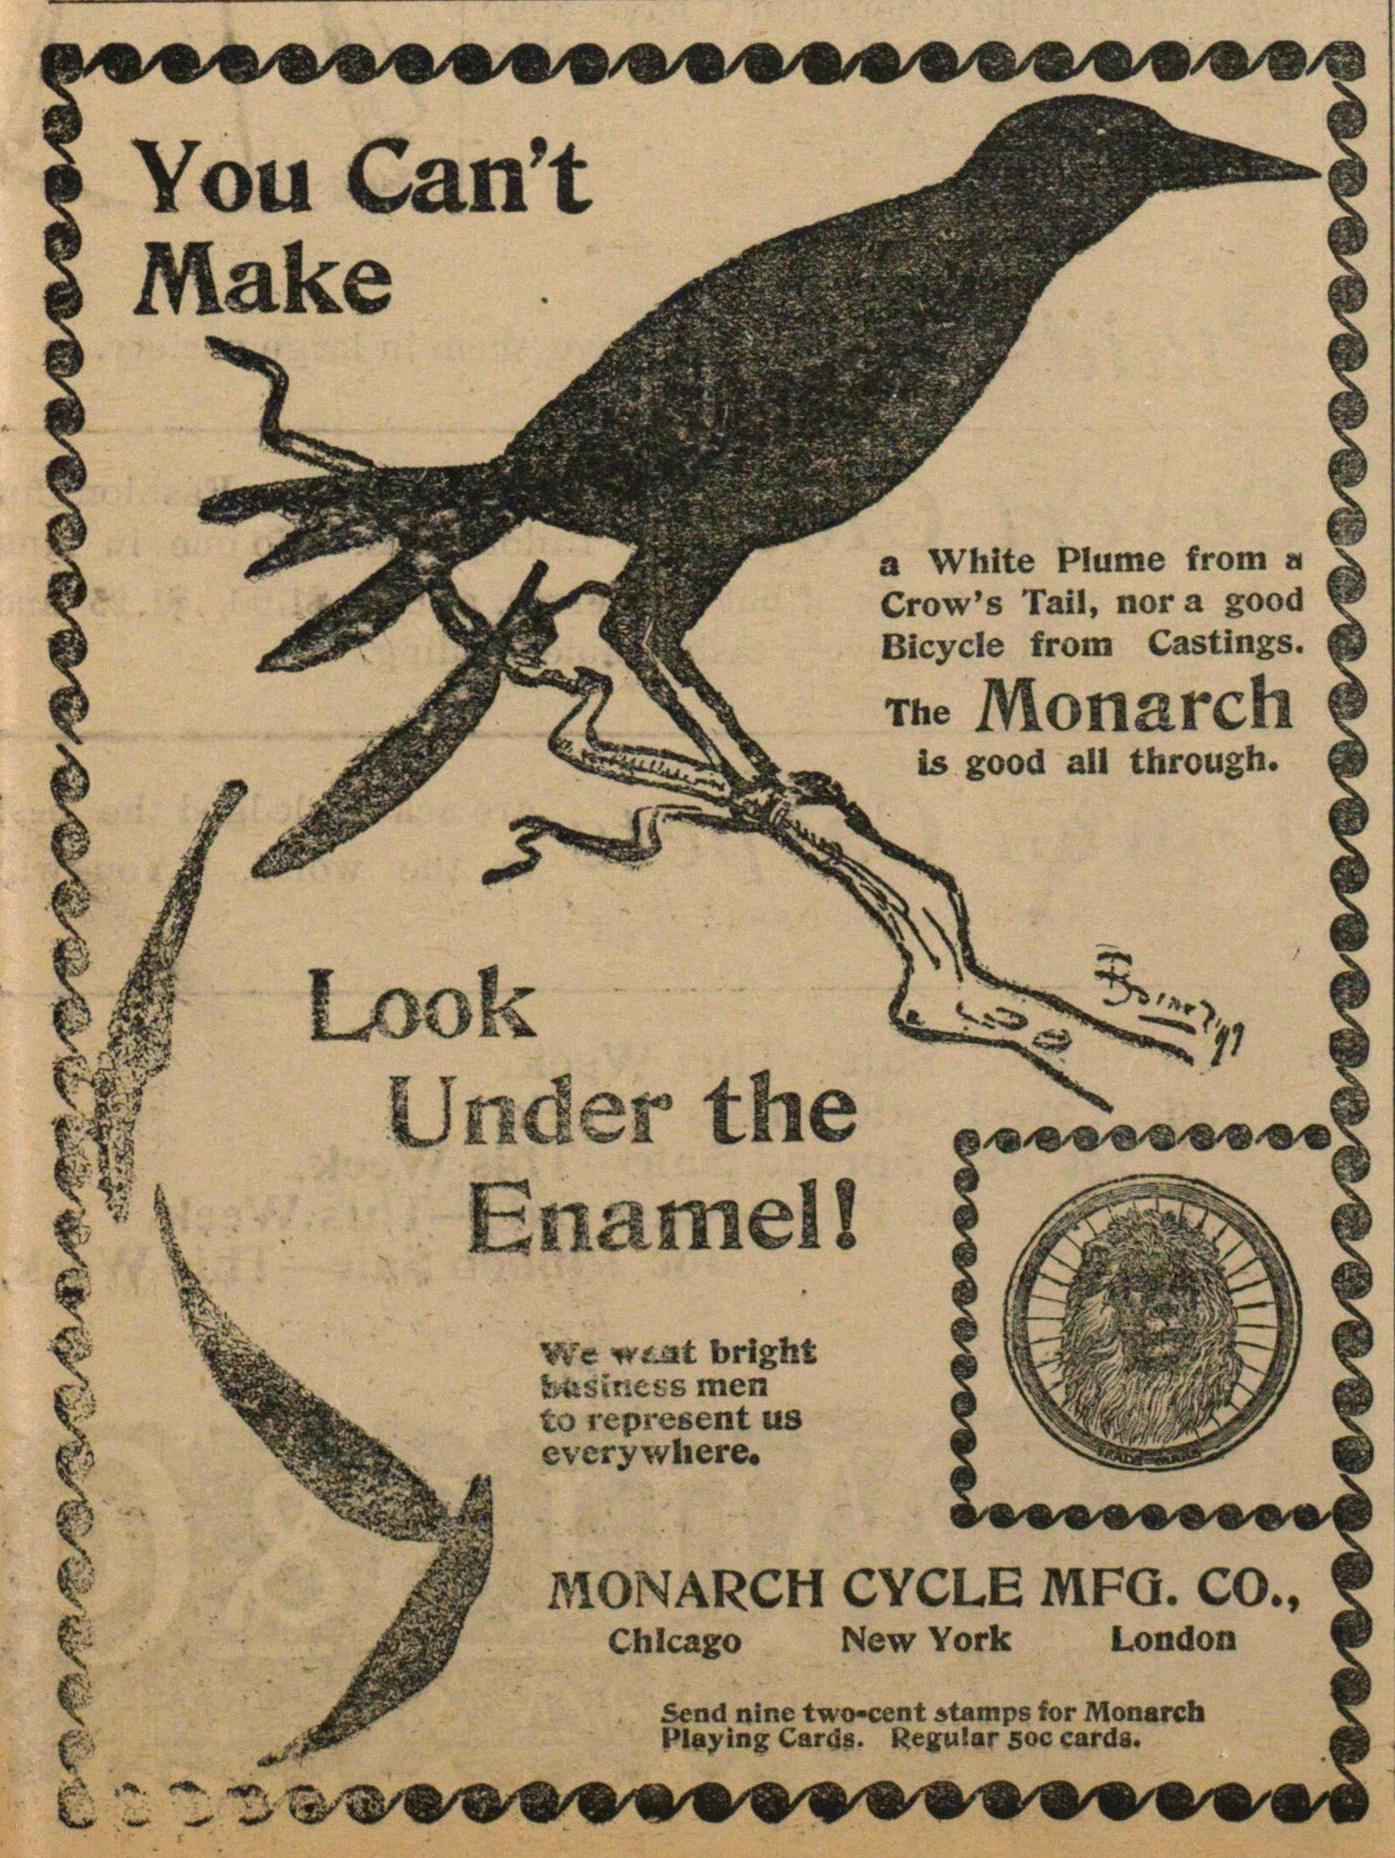 Monarch Cycle Mfg. Co. image